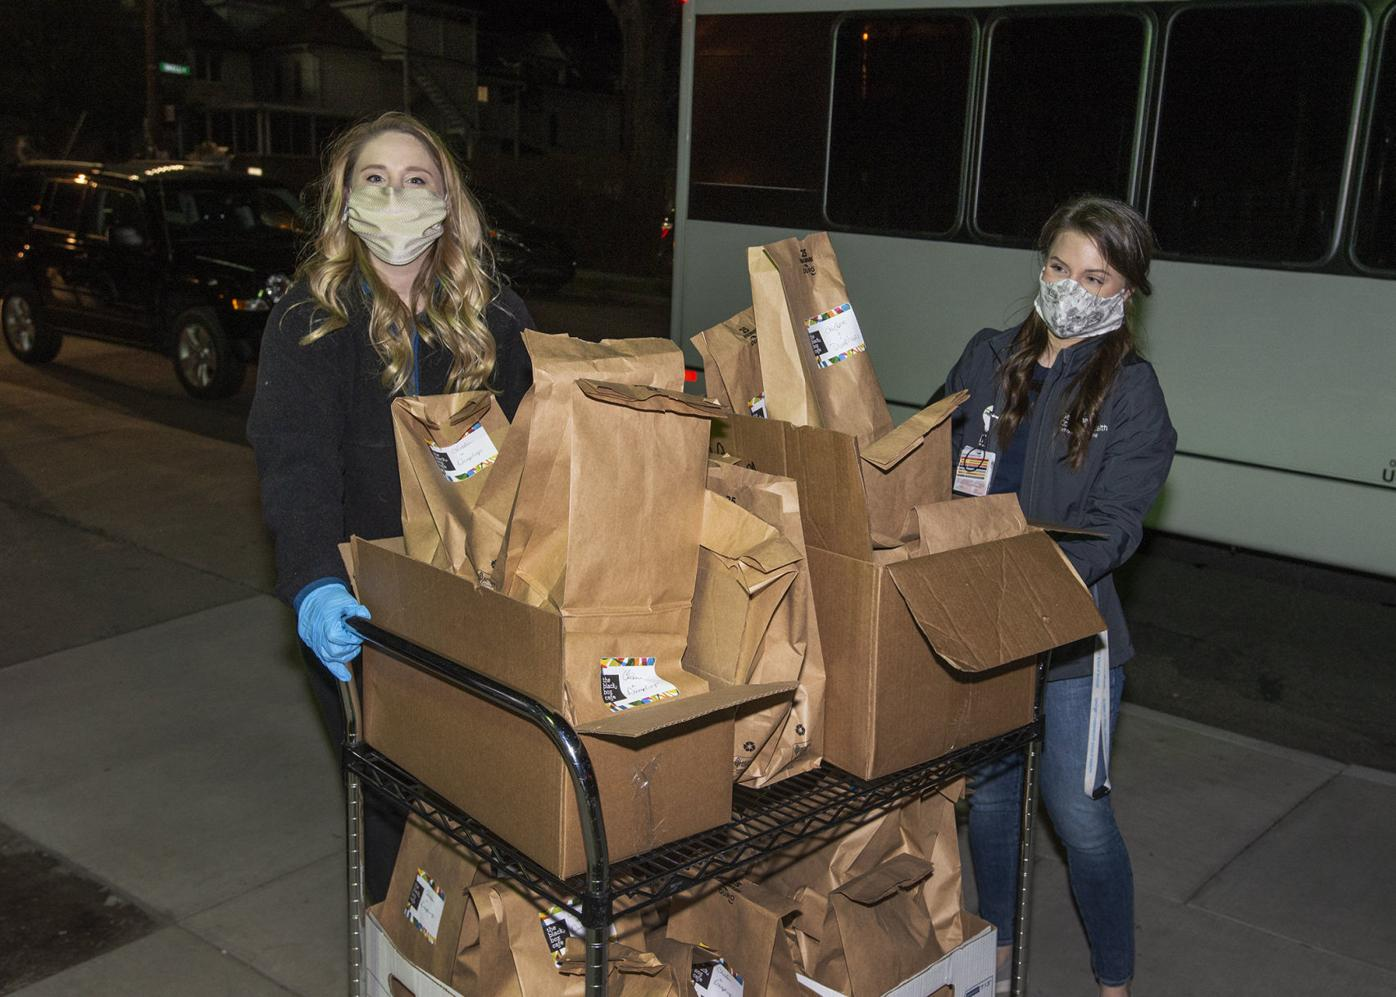 Meals for Medics initiative feeds frontline hospital workers, supports local restaurants